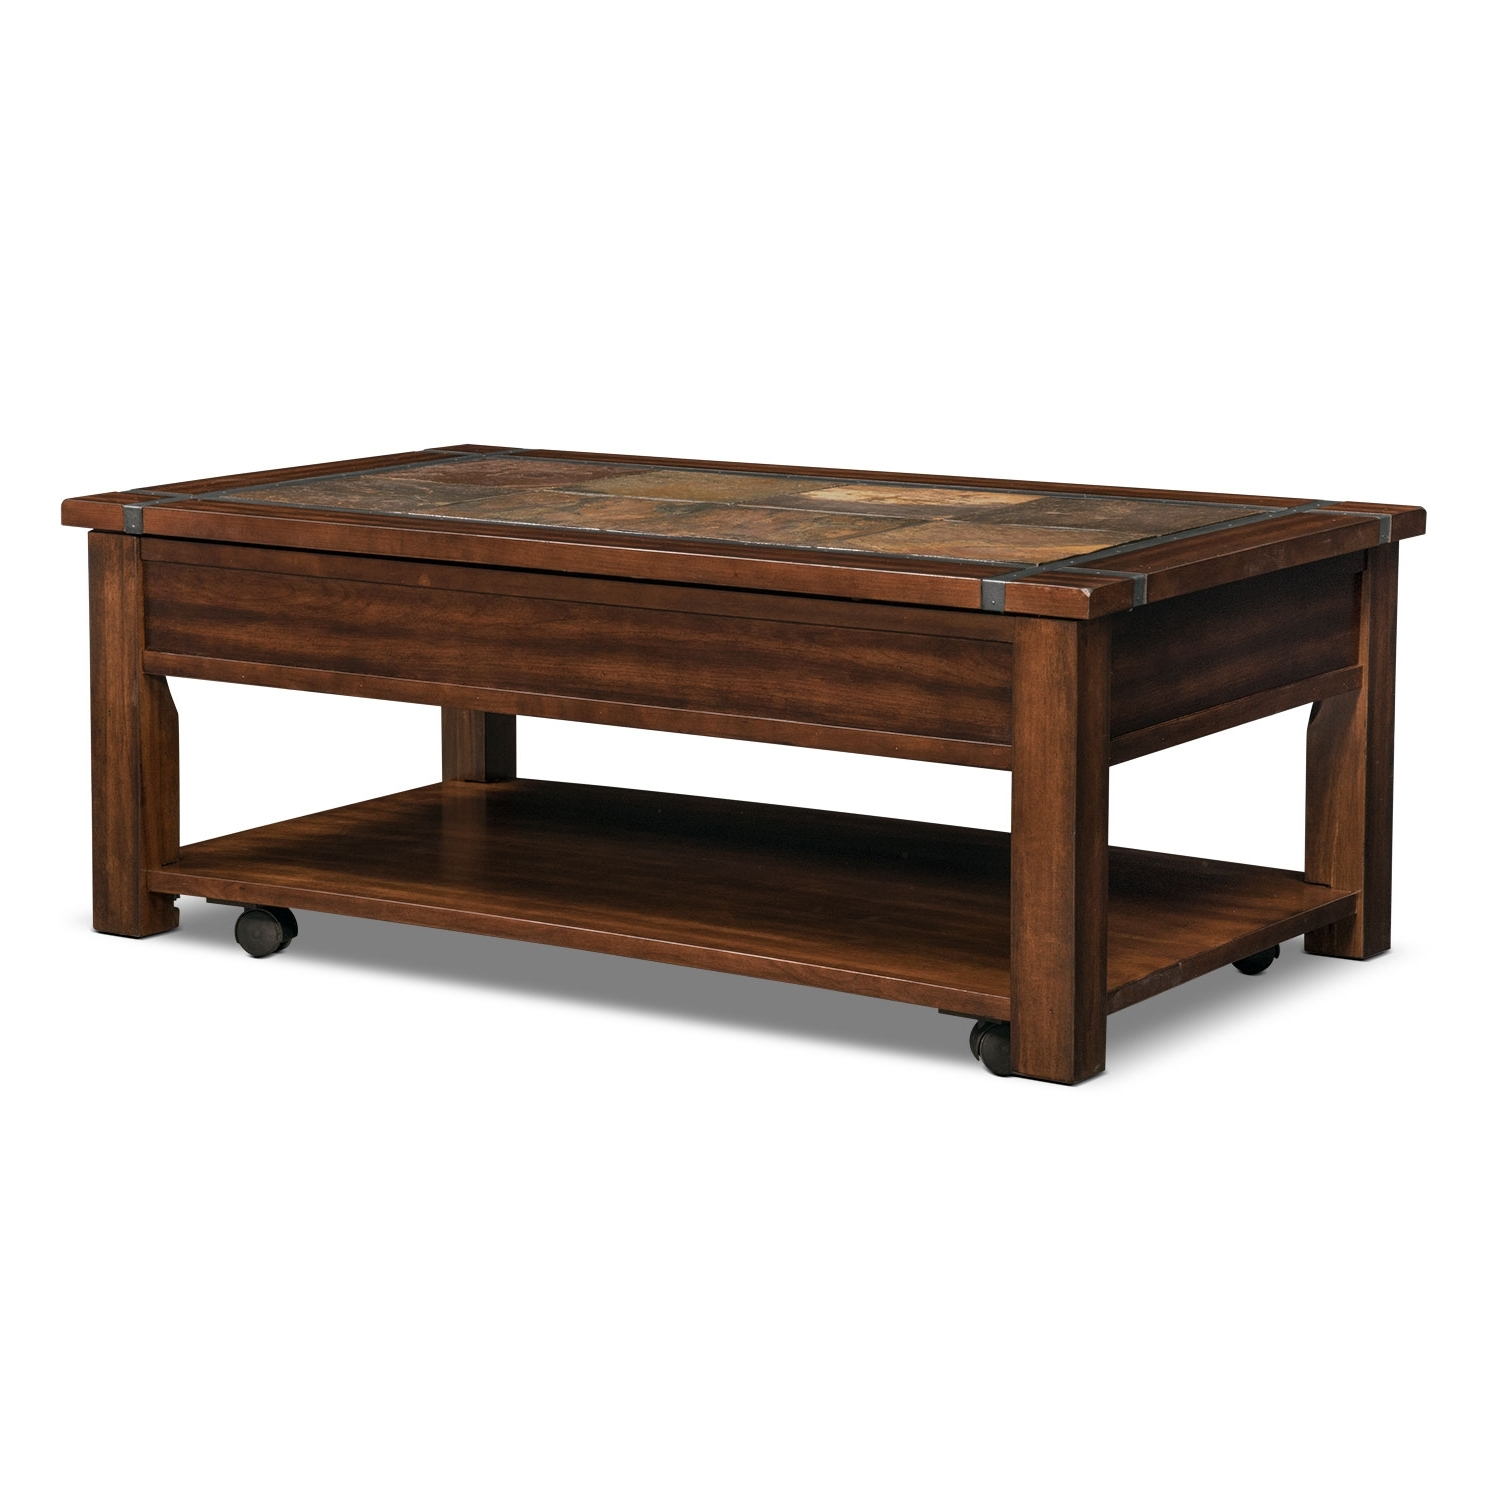 2018 Ashburn Cocktail Tables Throughout Slate Ridge Lift Top Cocktail Table – Cherry (View 5 of 20)